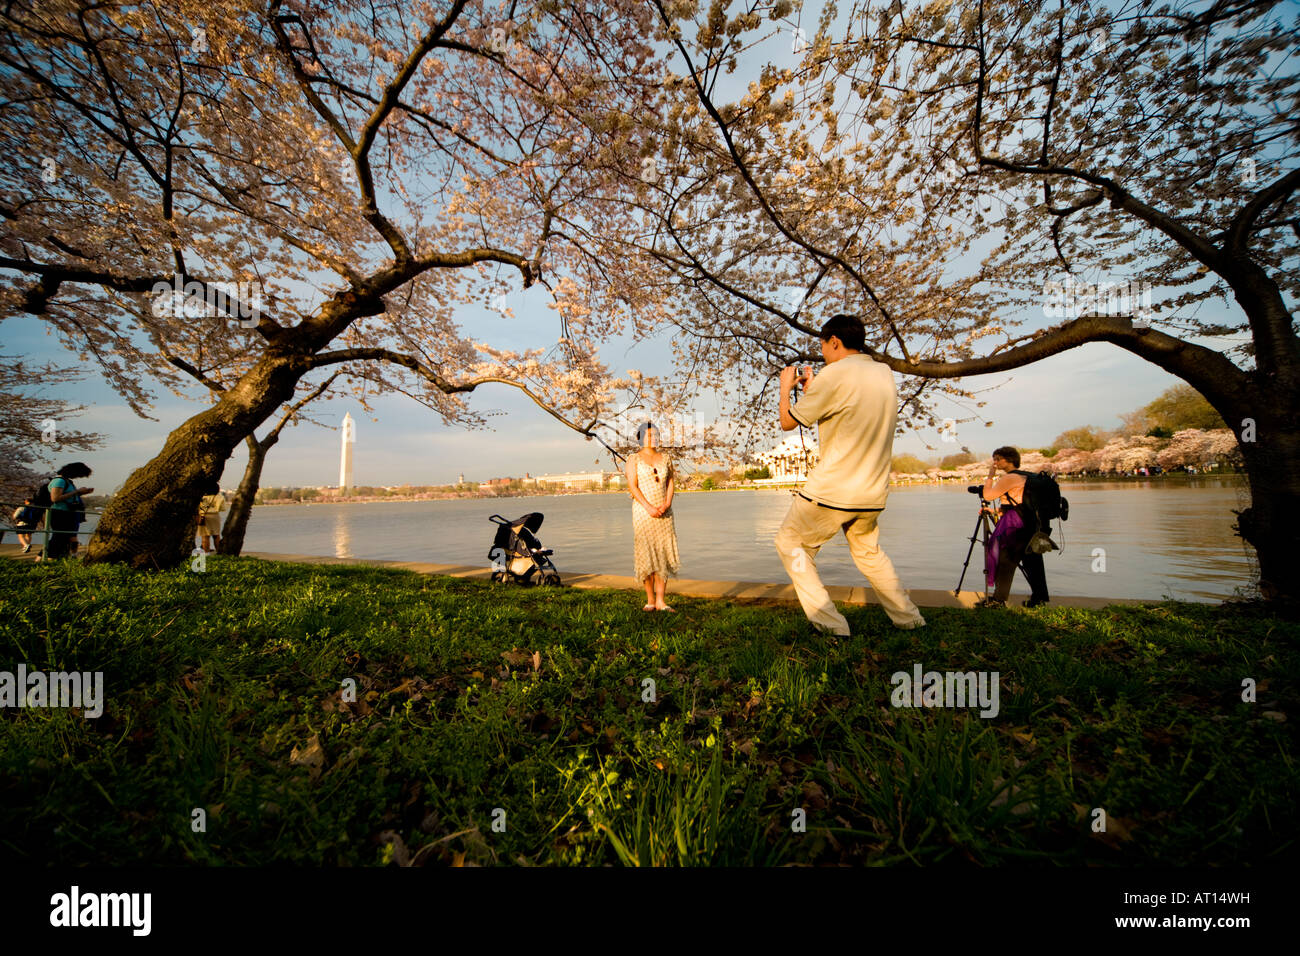 Taking pictures at the National Cherry Blossom Festival in Washington DC. Tidal Basin with Jefferson Memorial in Stock Photo